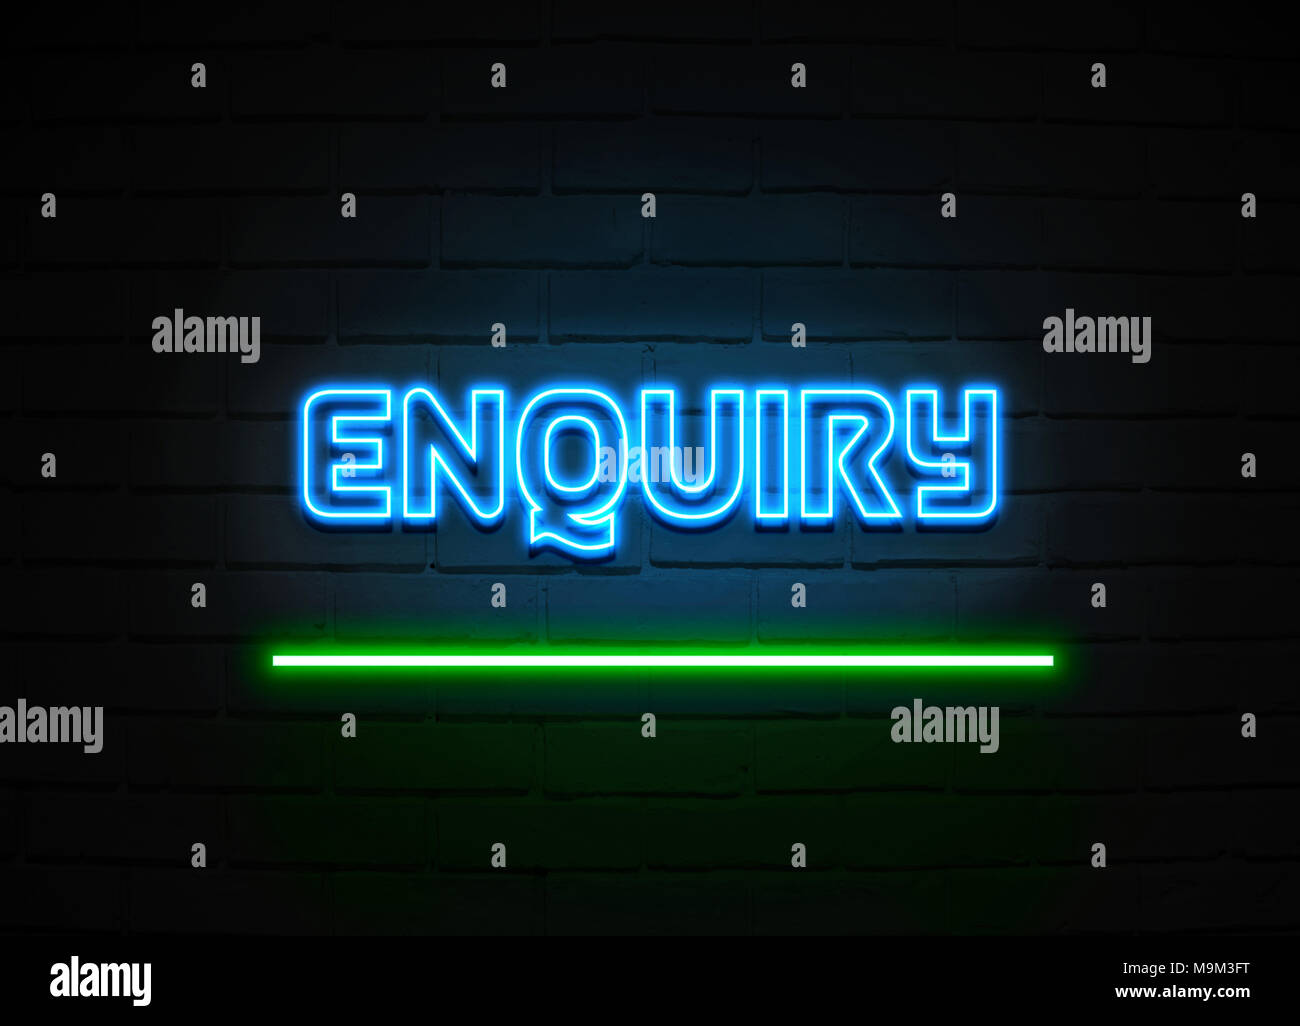 Enquiry neon sign - Glowing Neon Sign on brickwall wall - 3D rendered royalty free stock illustration. - Stock Image